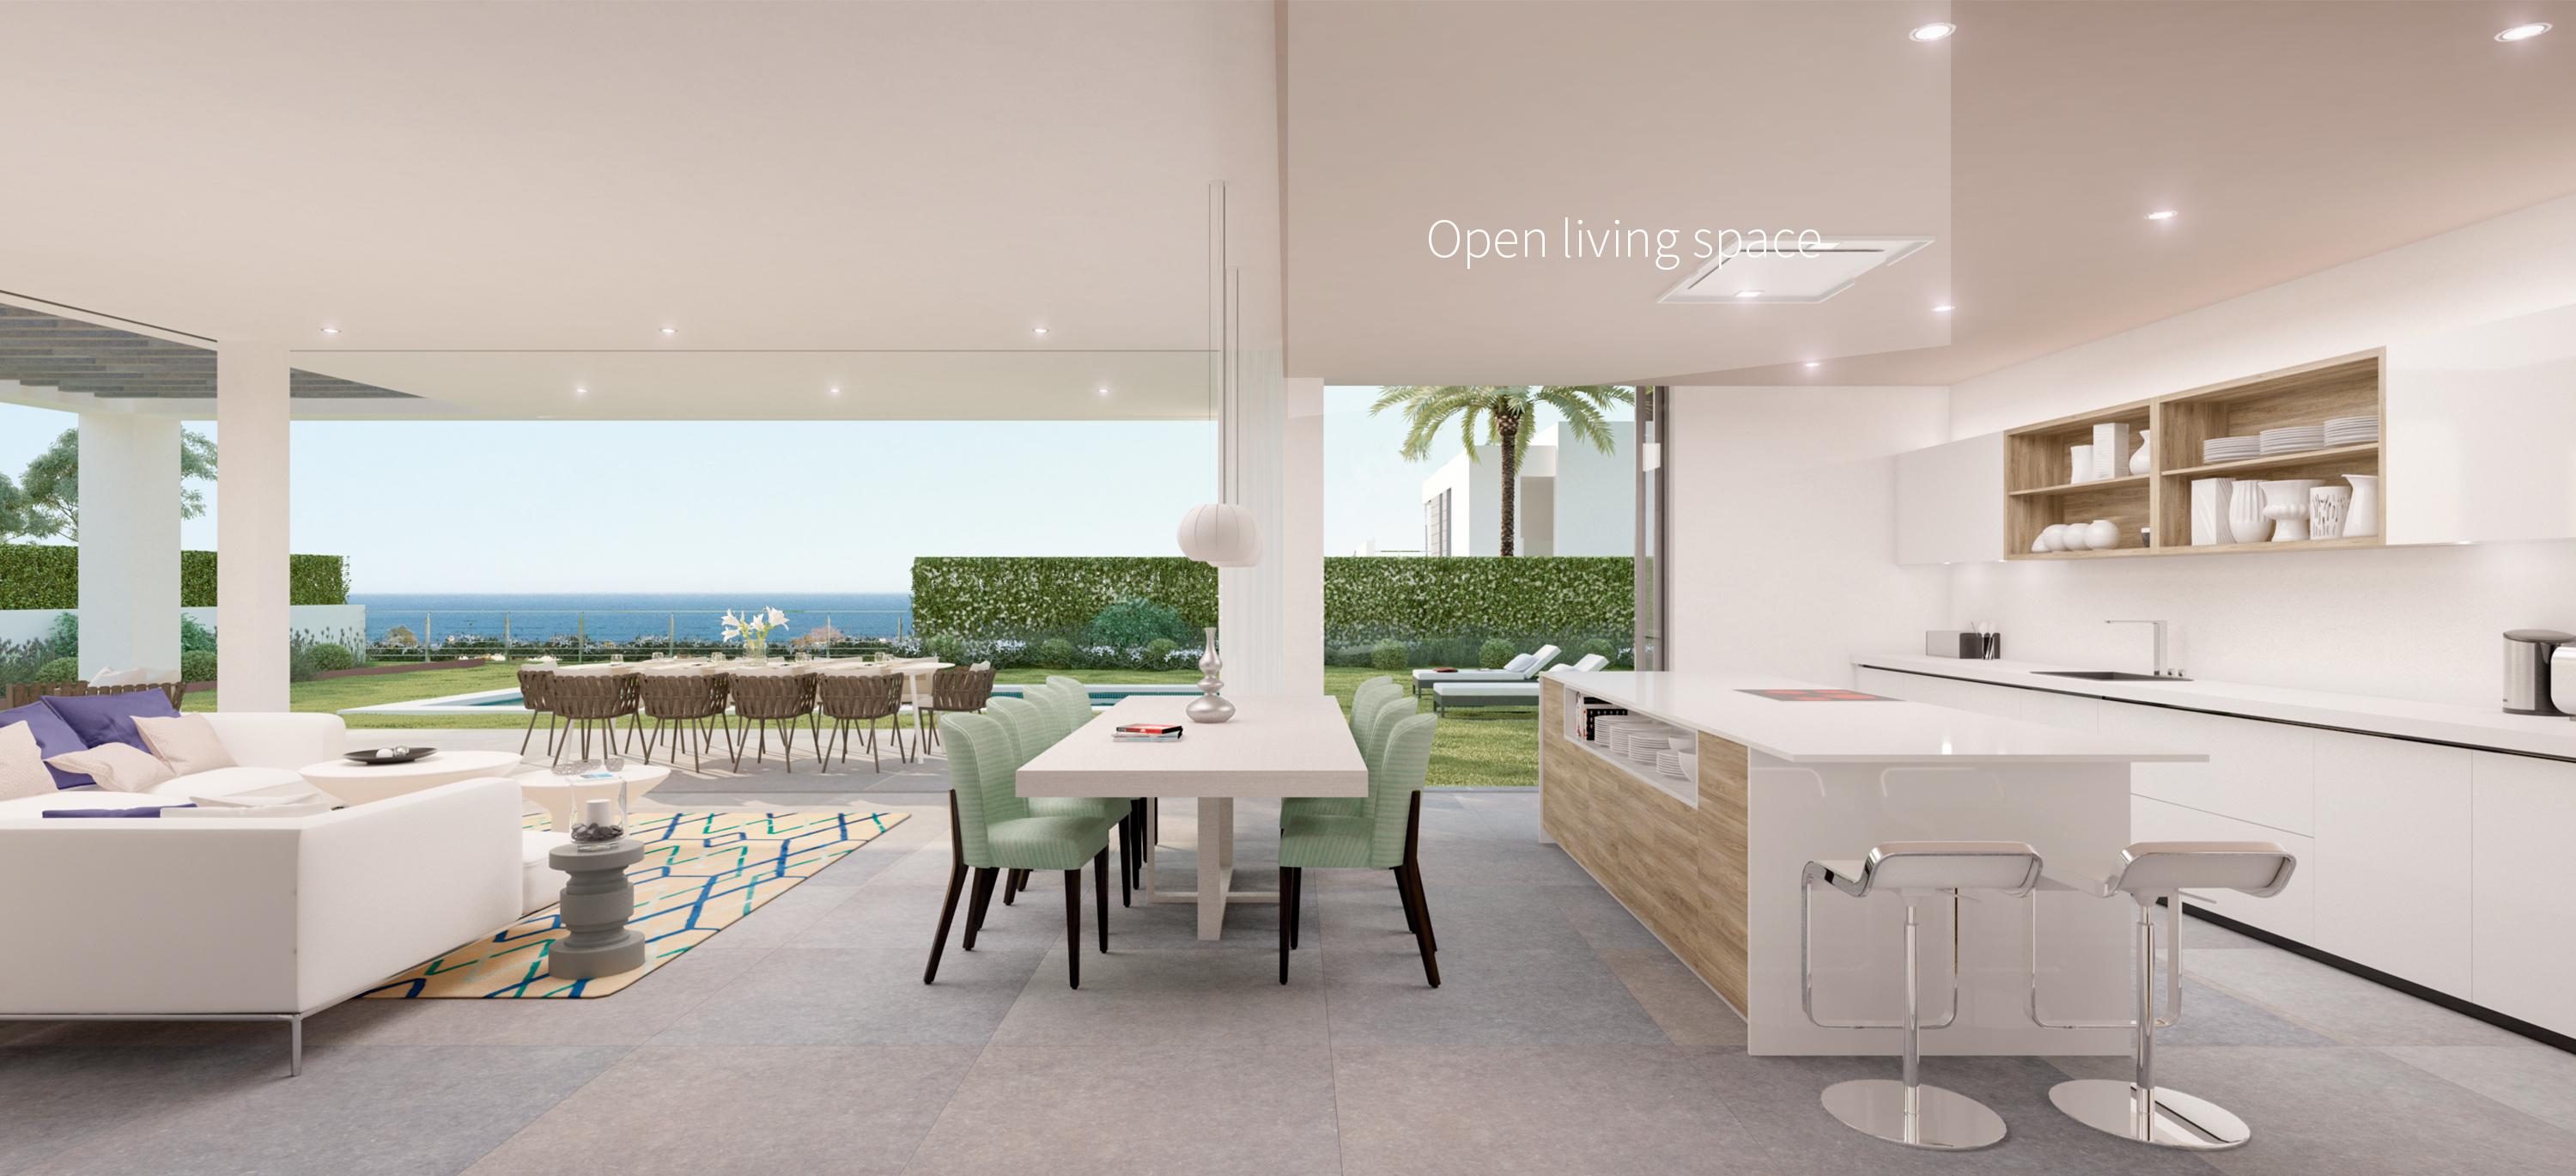 Open living space